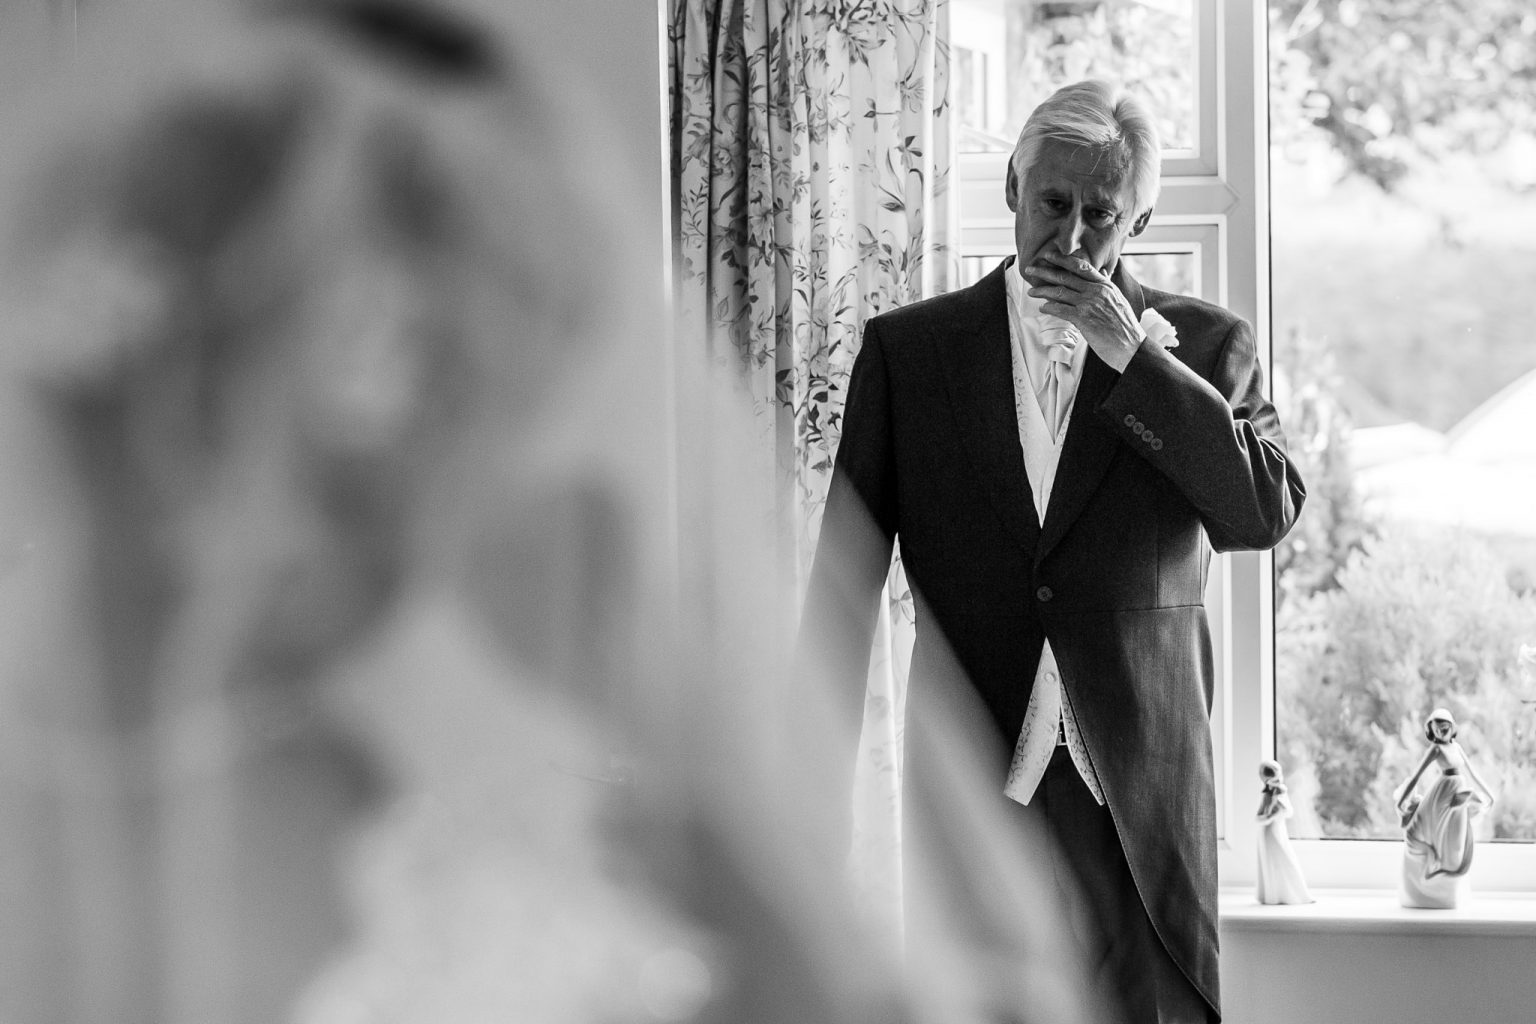 Father of the bride becomes emotional when he sees her in her wedding dress